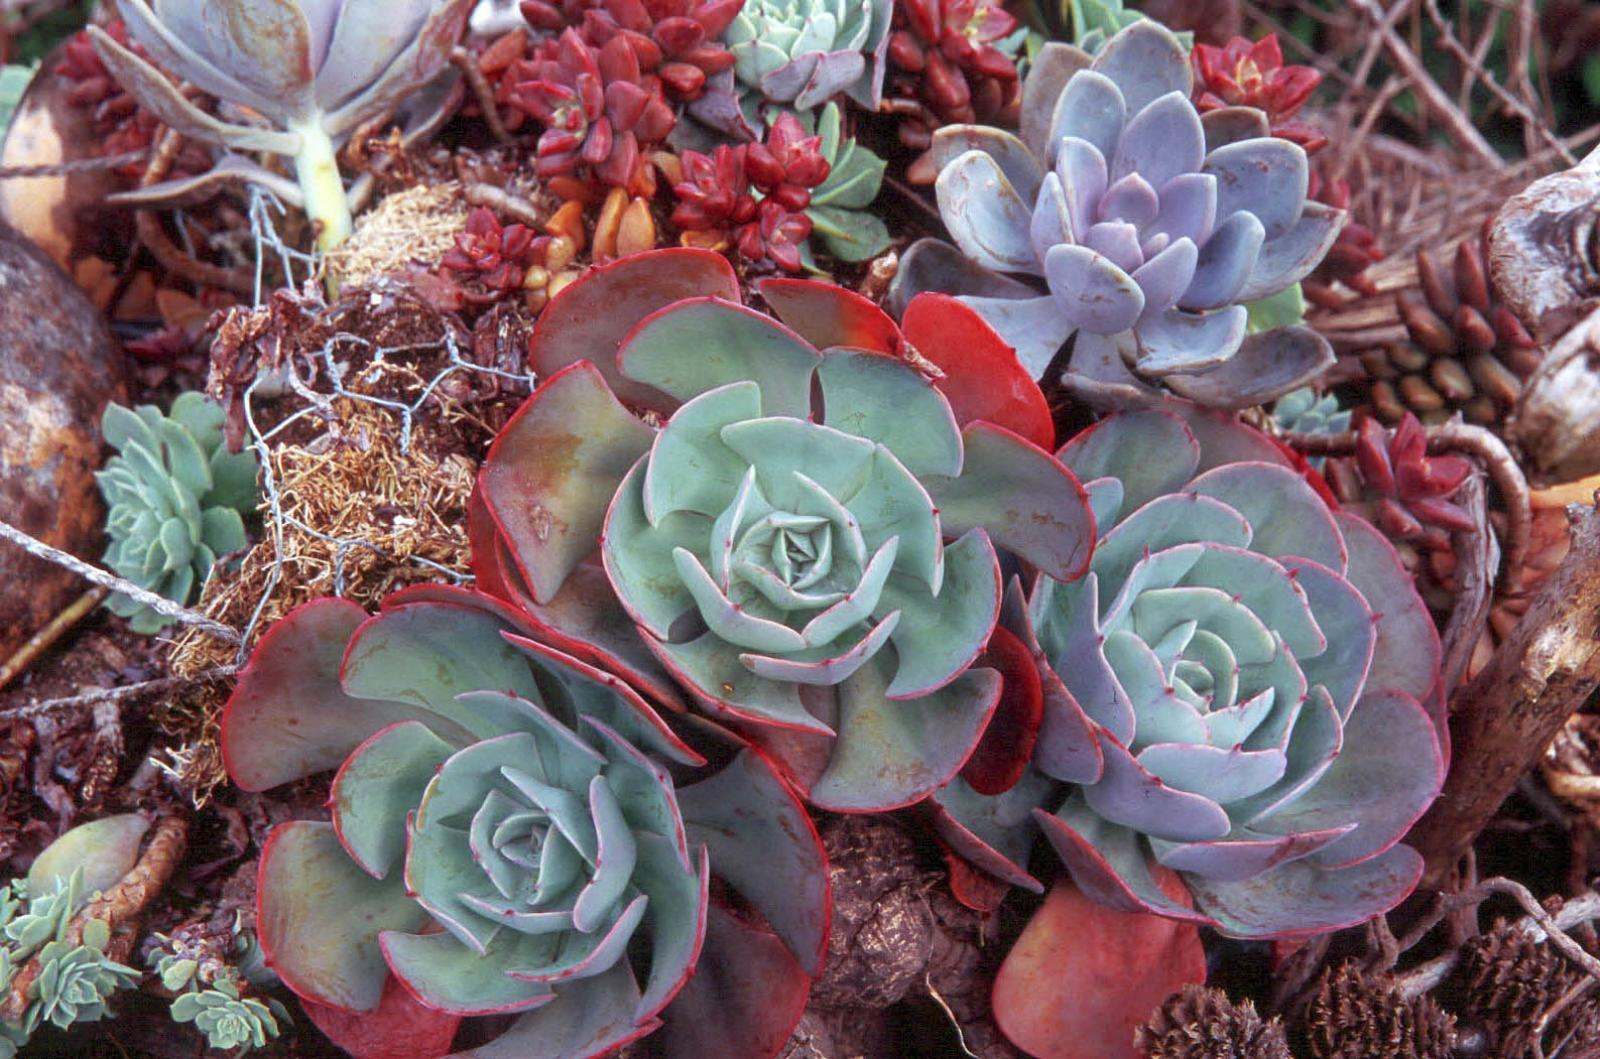 Echeveria and succulent display in Emily Gadonyi's garden.